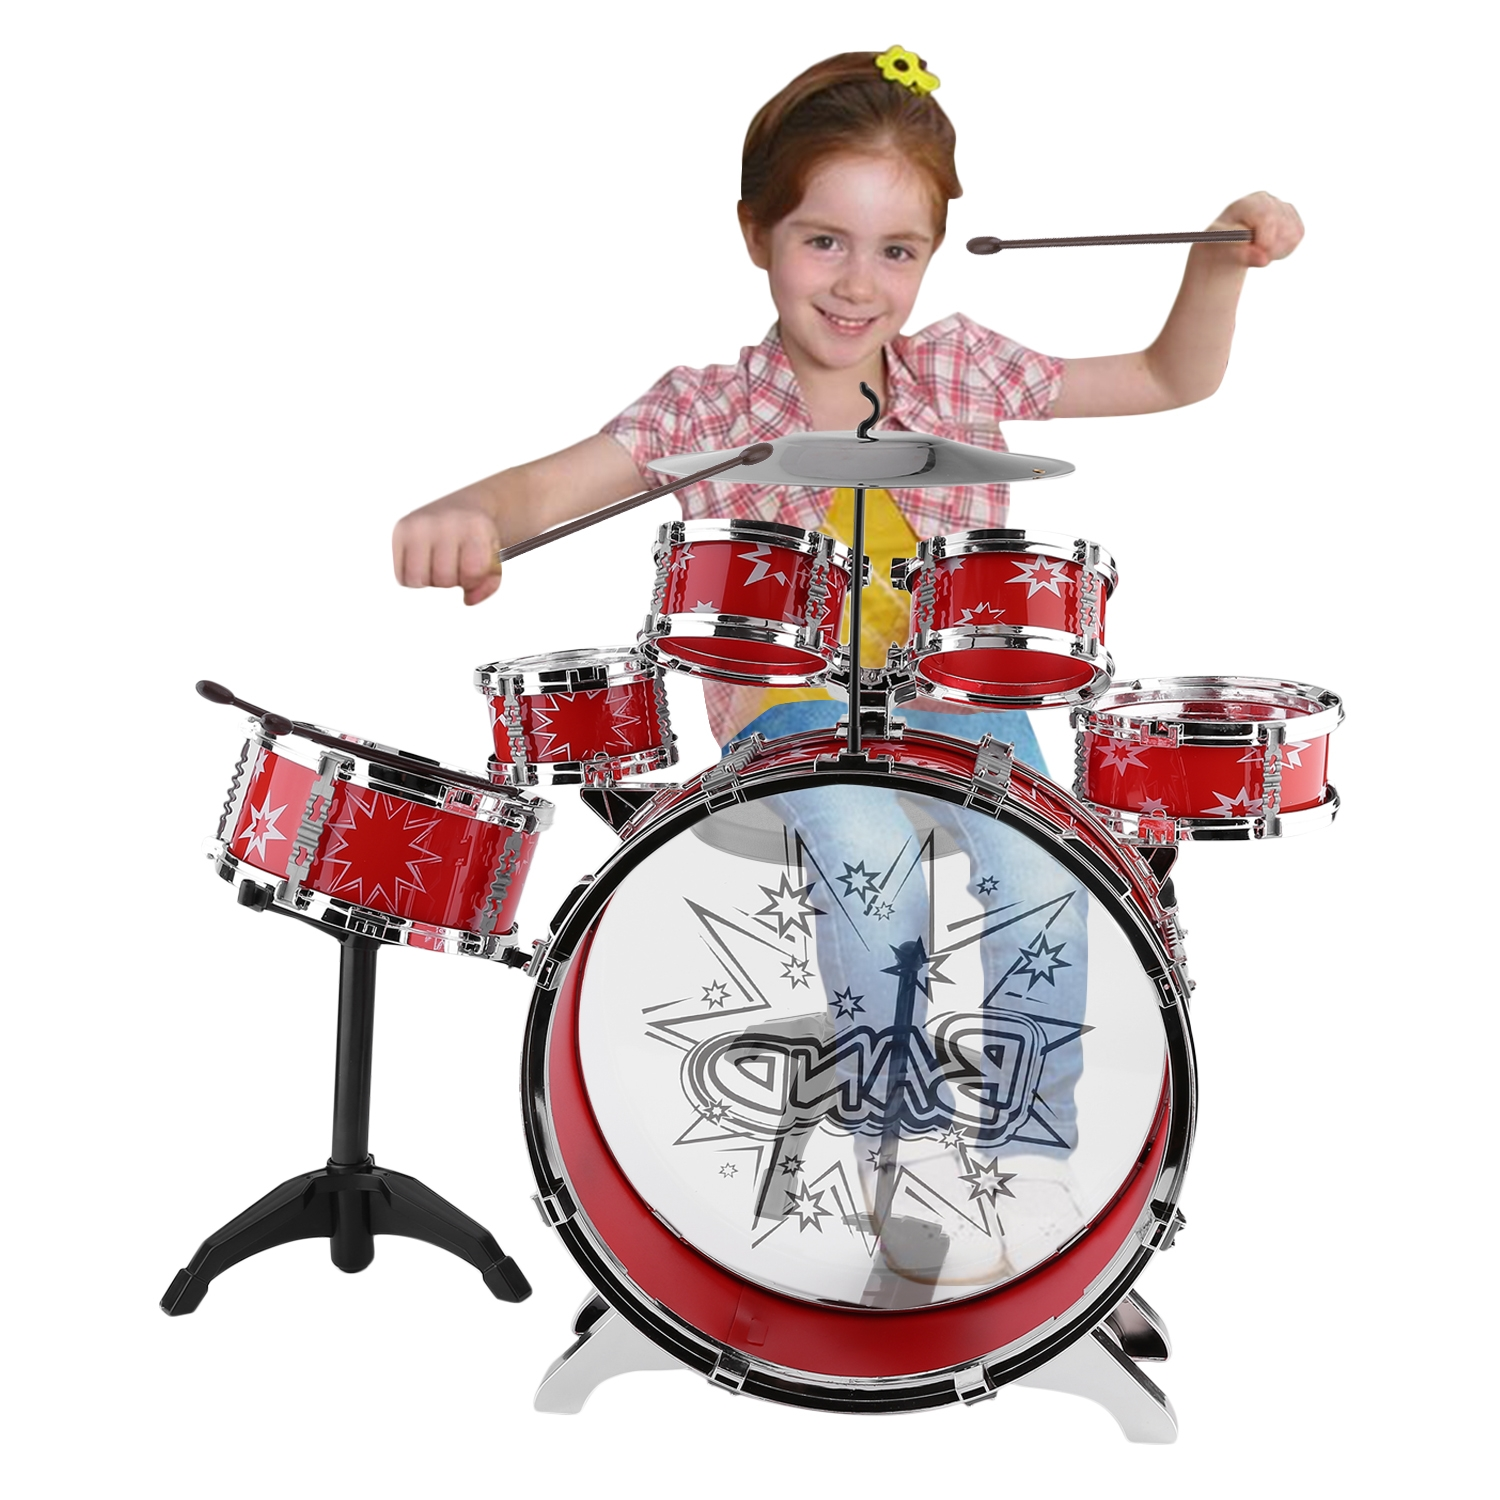 CNMODLE Kids Junior Drum Kit Children Tom Drums Cymbal Stool Drumsticks Set Musical... by LESHP